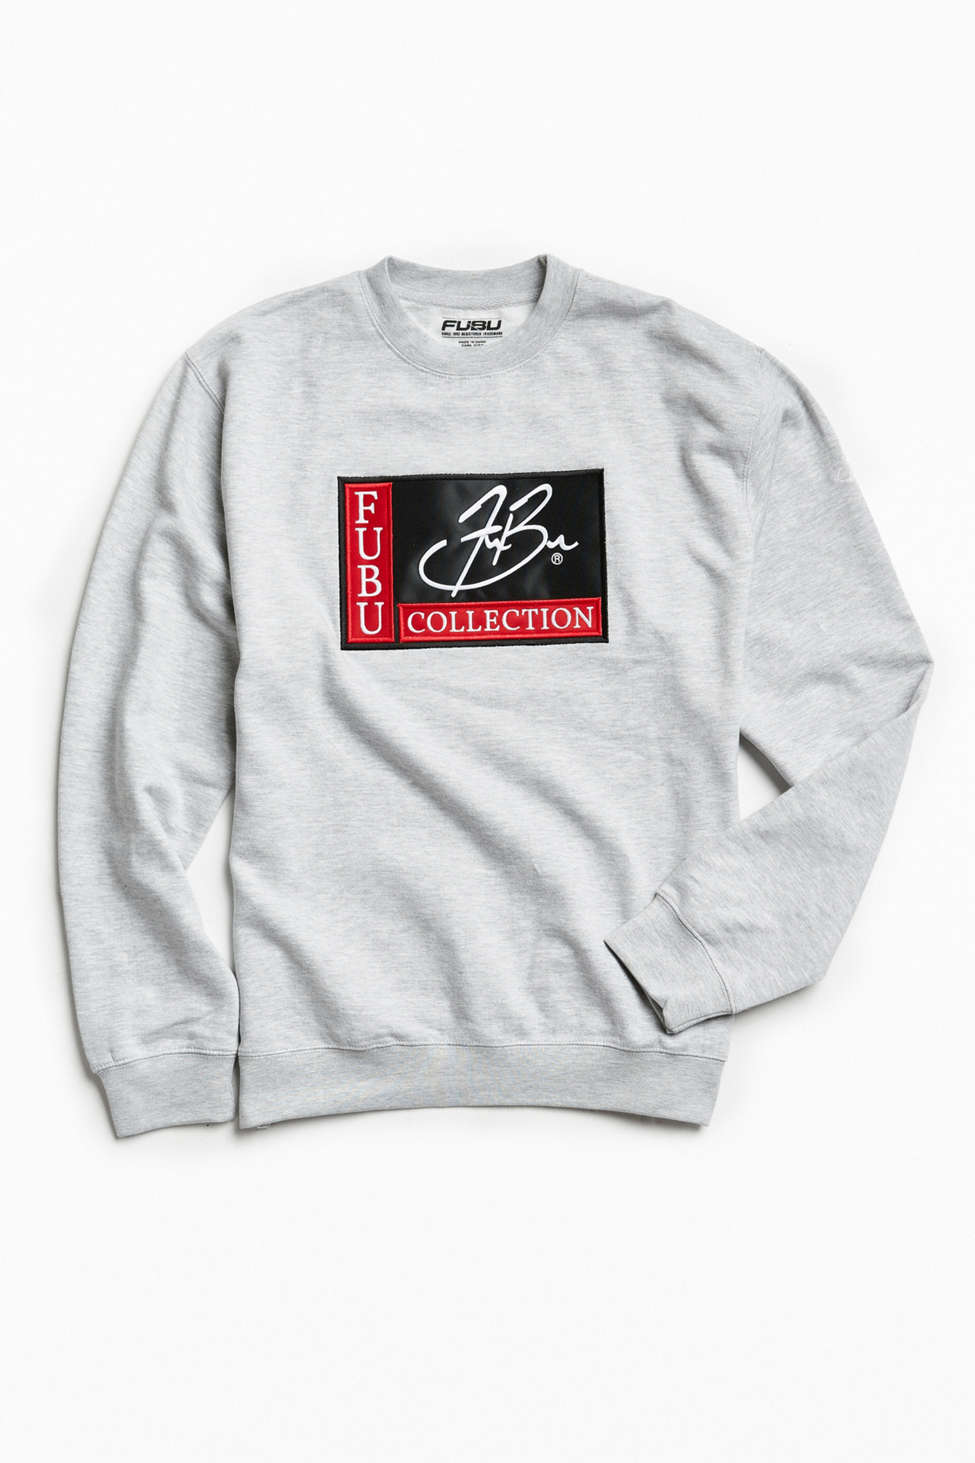 FUBU Embroidered Crew Neck Sweatshirt | Urban Outfitters